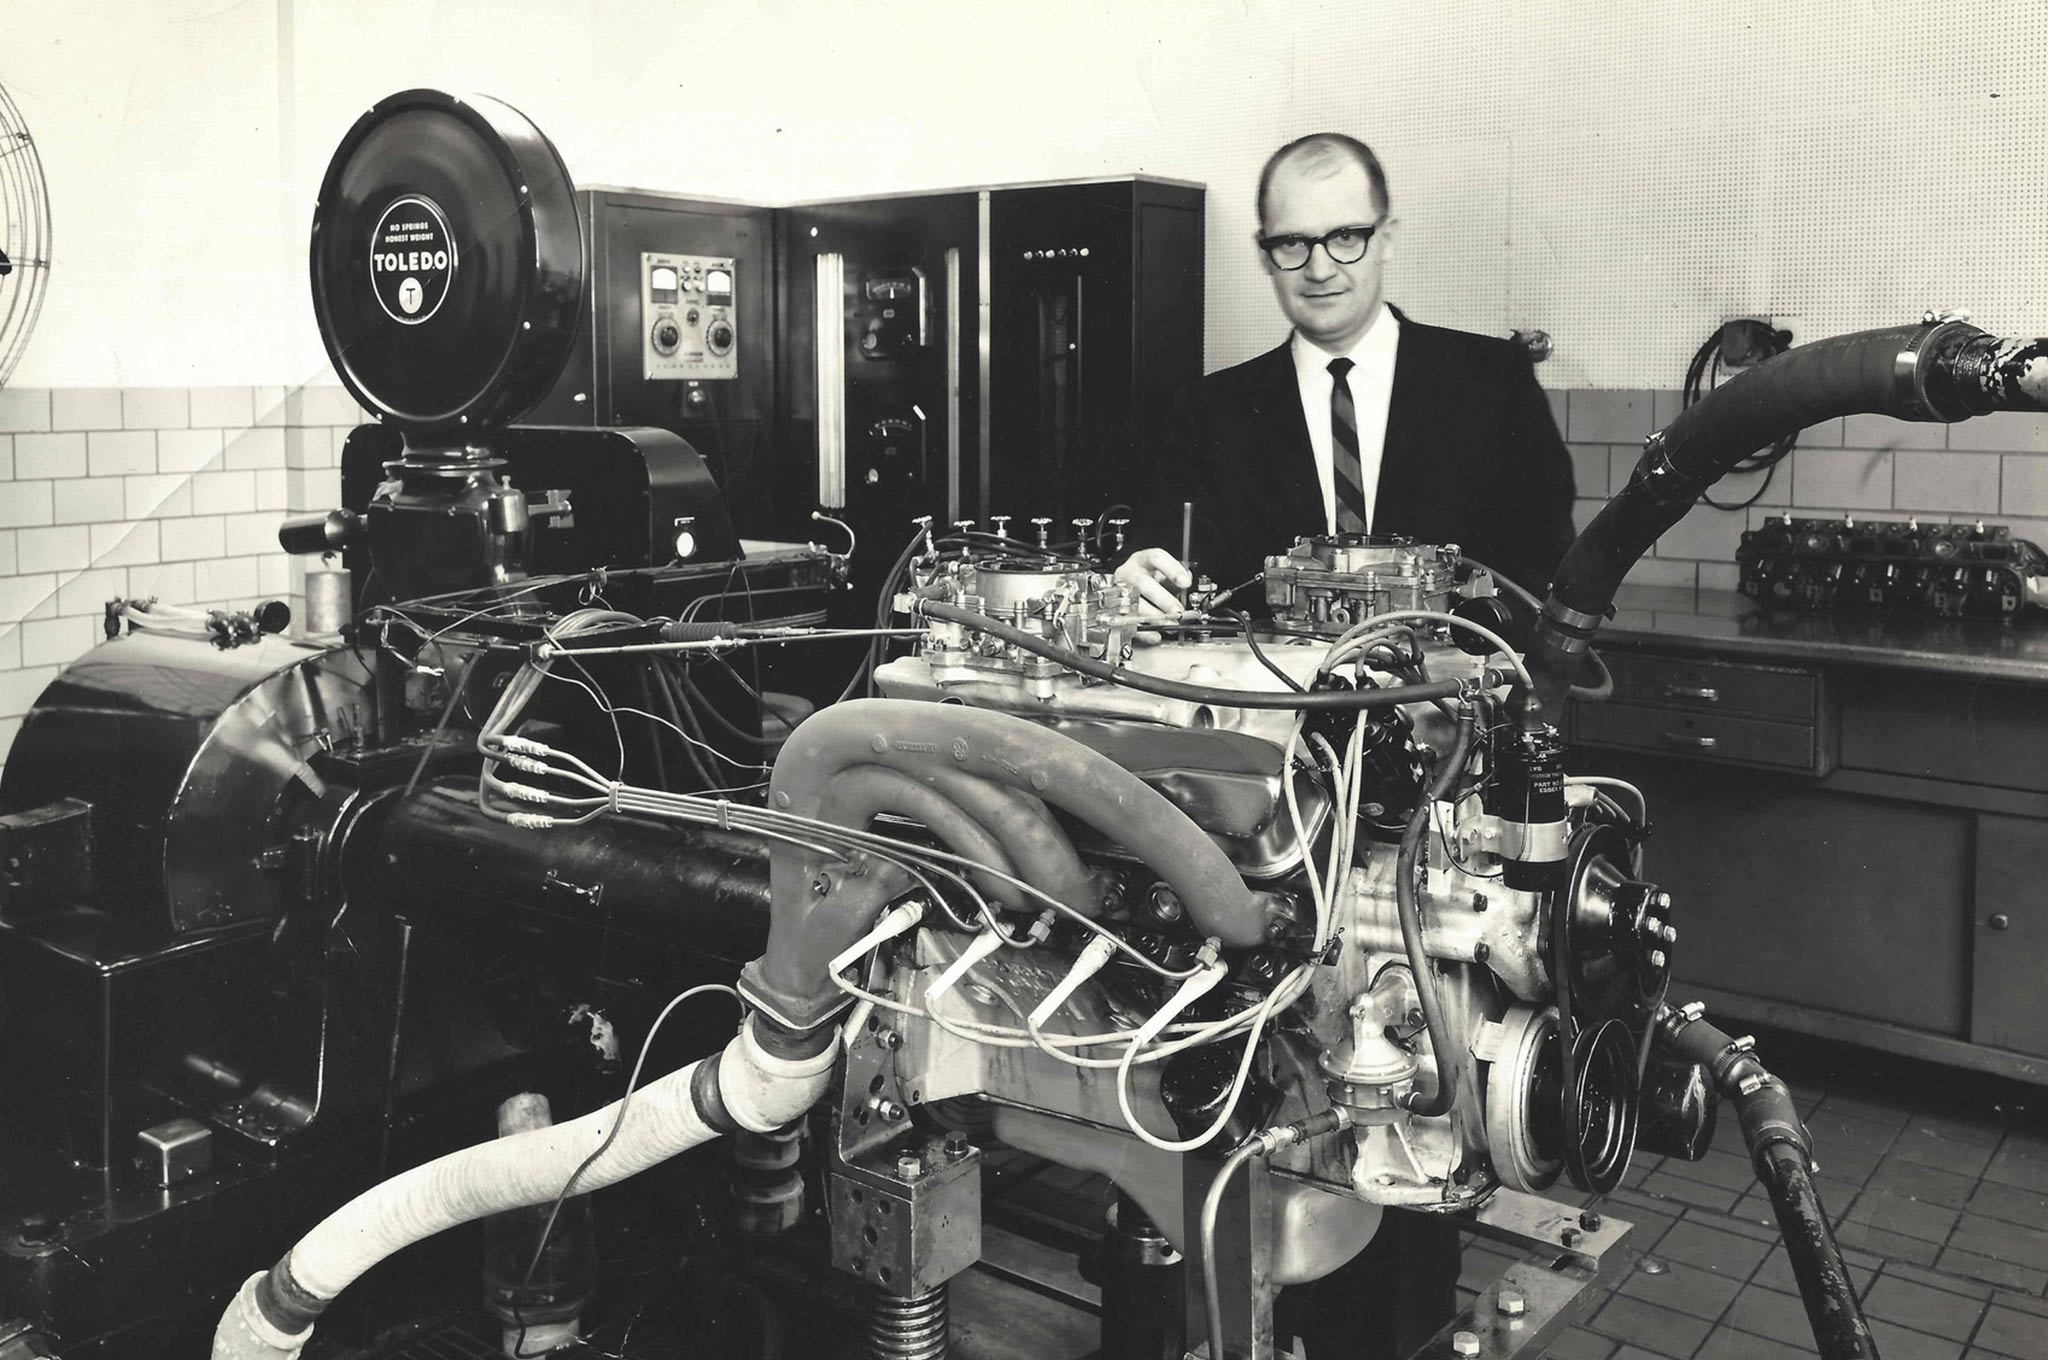 Mr. Hoover in the dyno room with a hot Max Wedge; soon after, the sound had a whole new pitch as Hemi development began to howl.